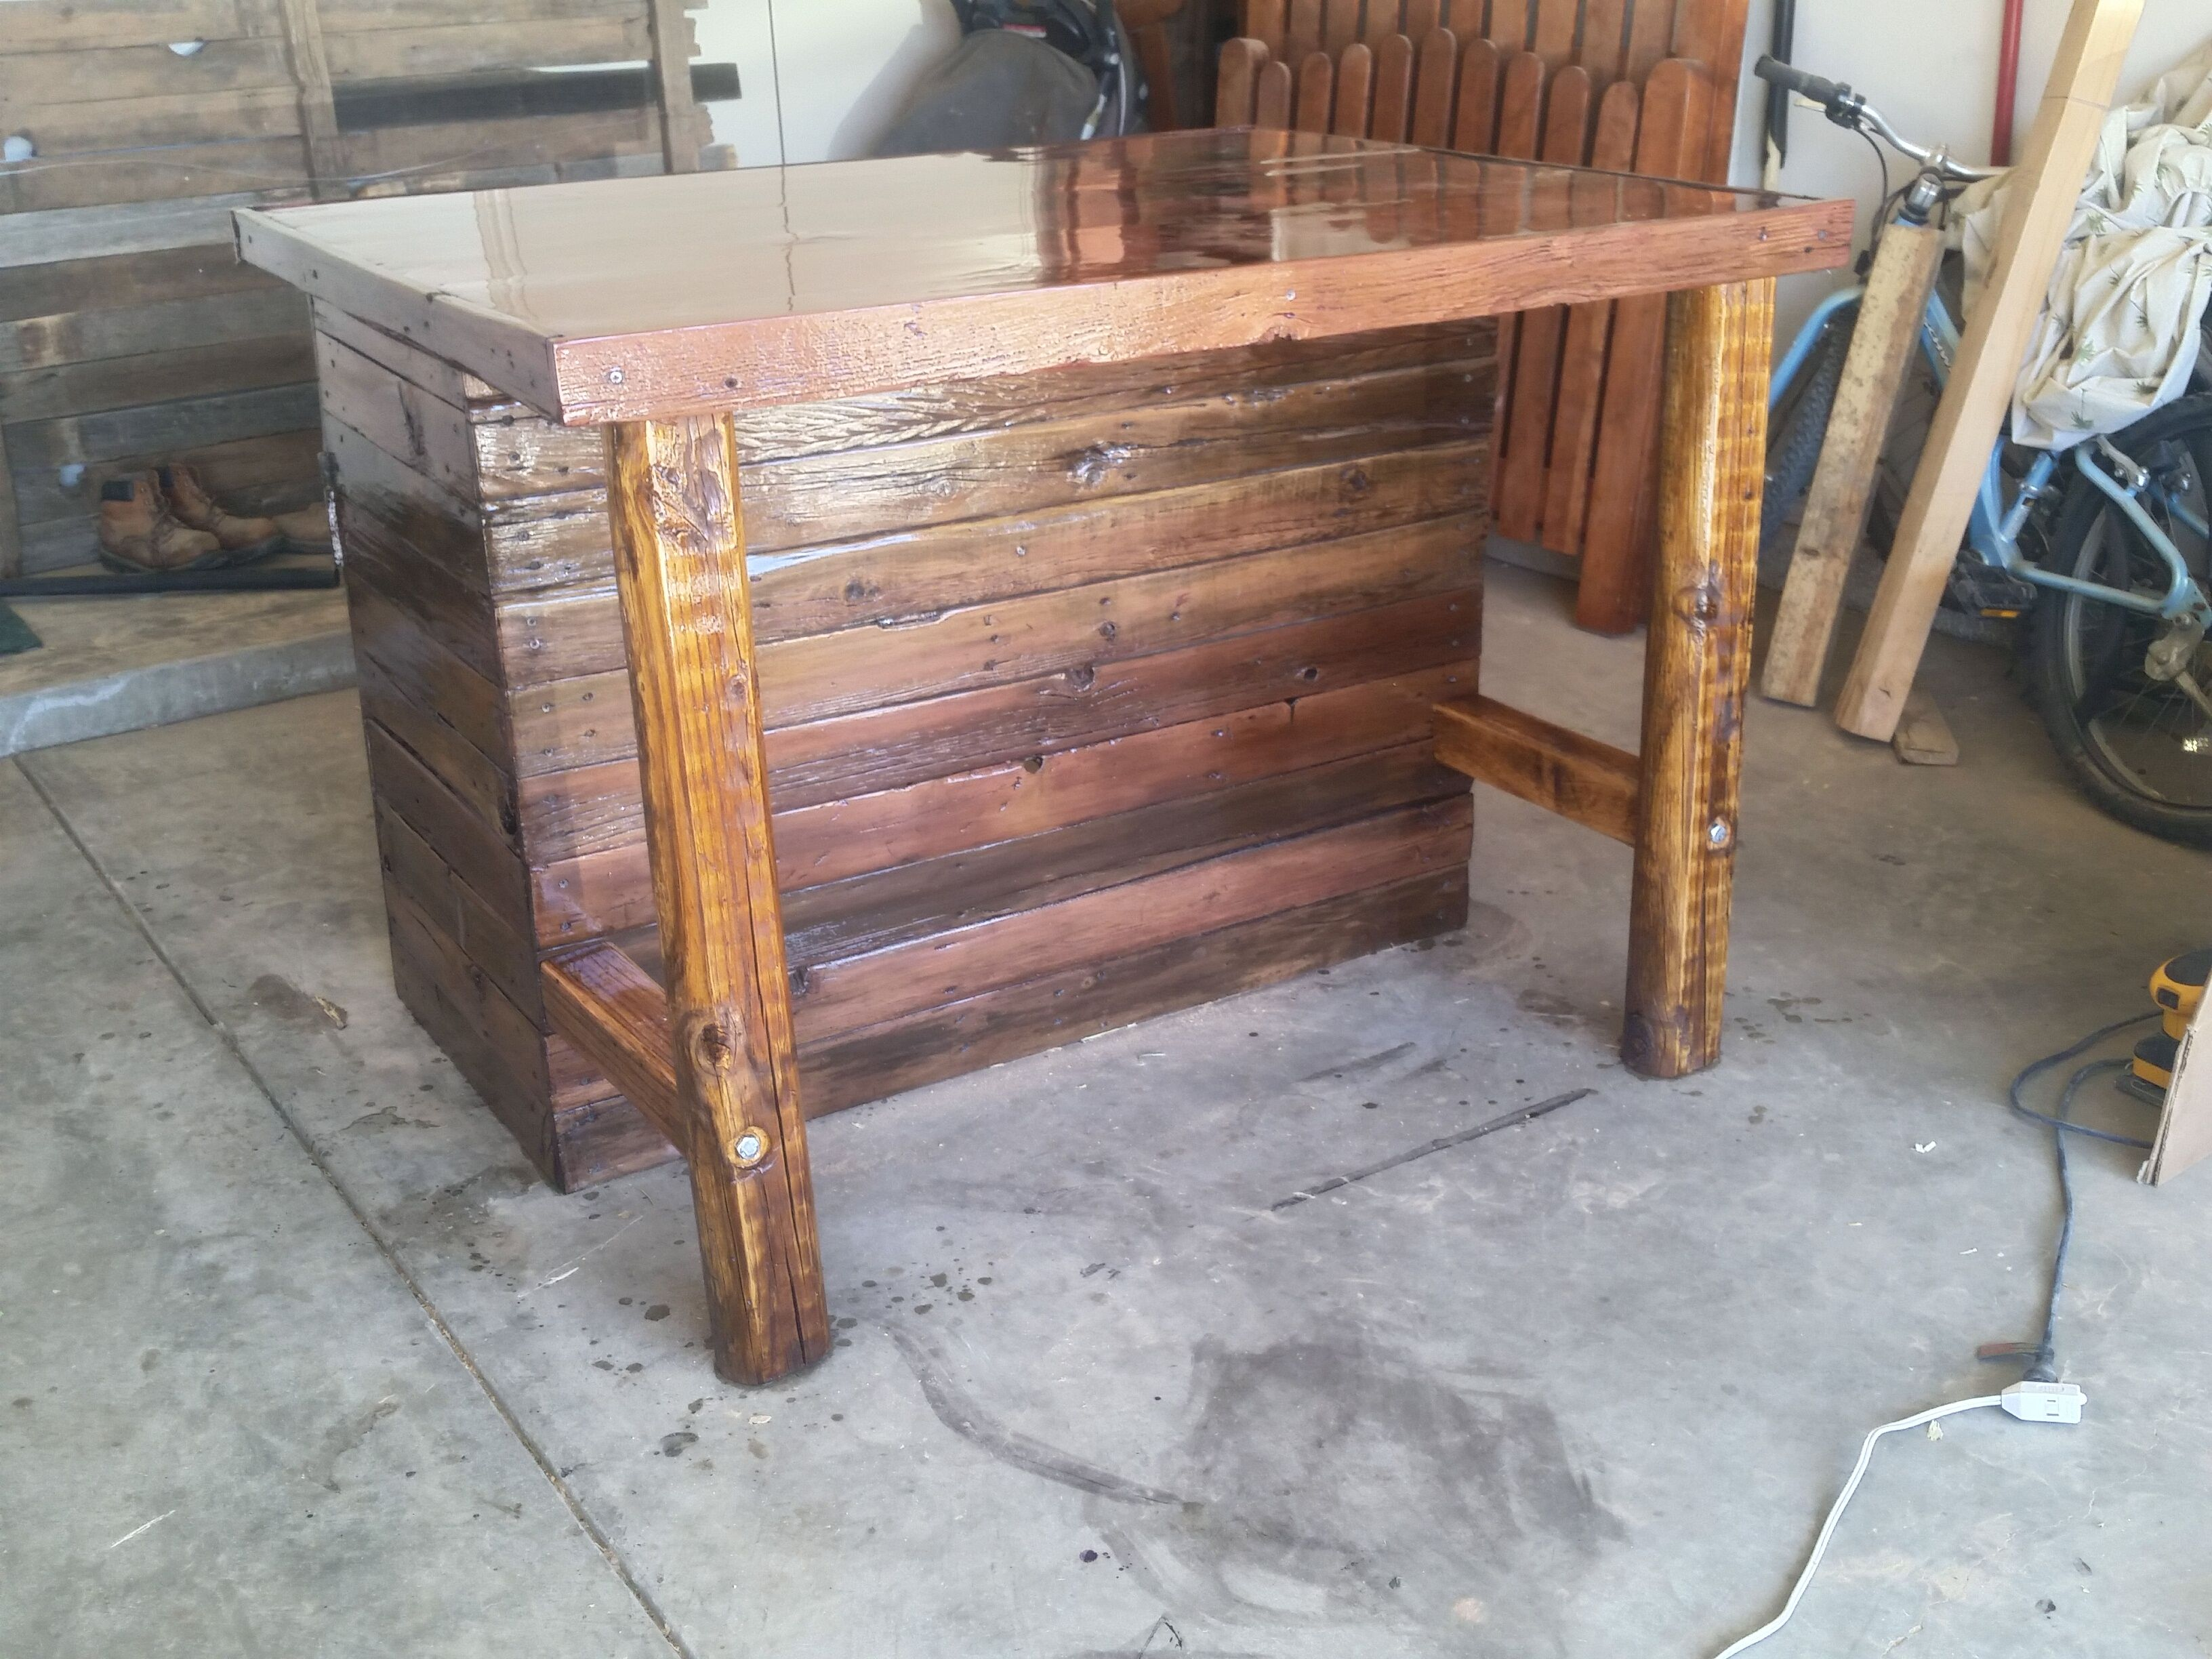 Handmade Rustic Kitchen Island Outdoor Bar by Cowboy Creation